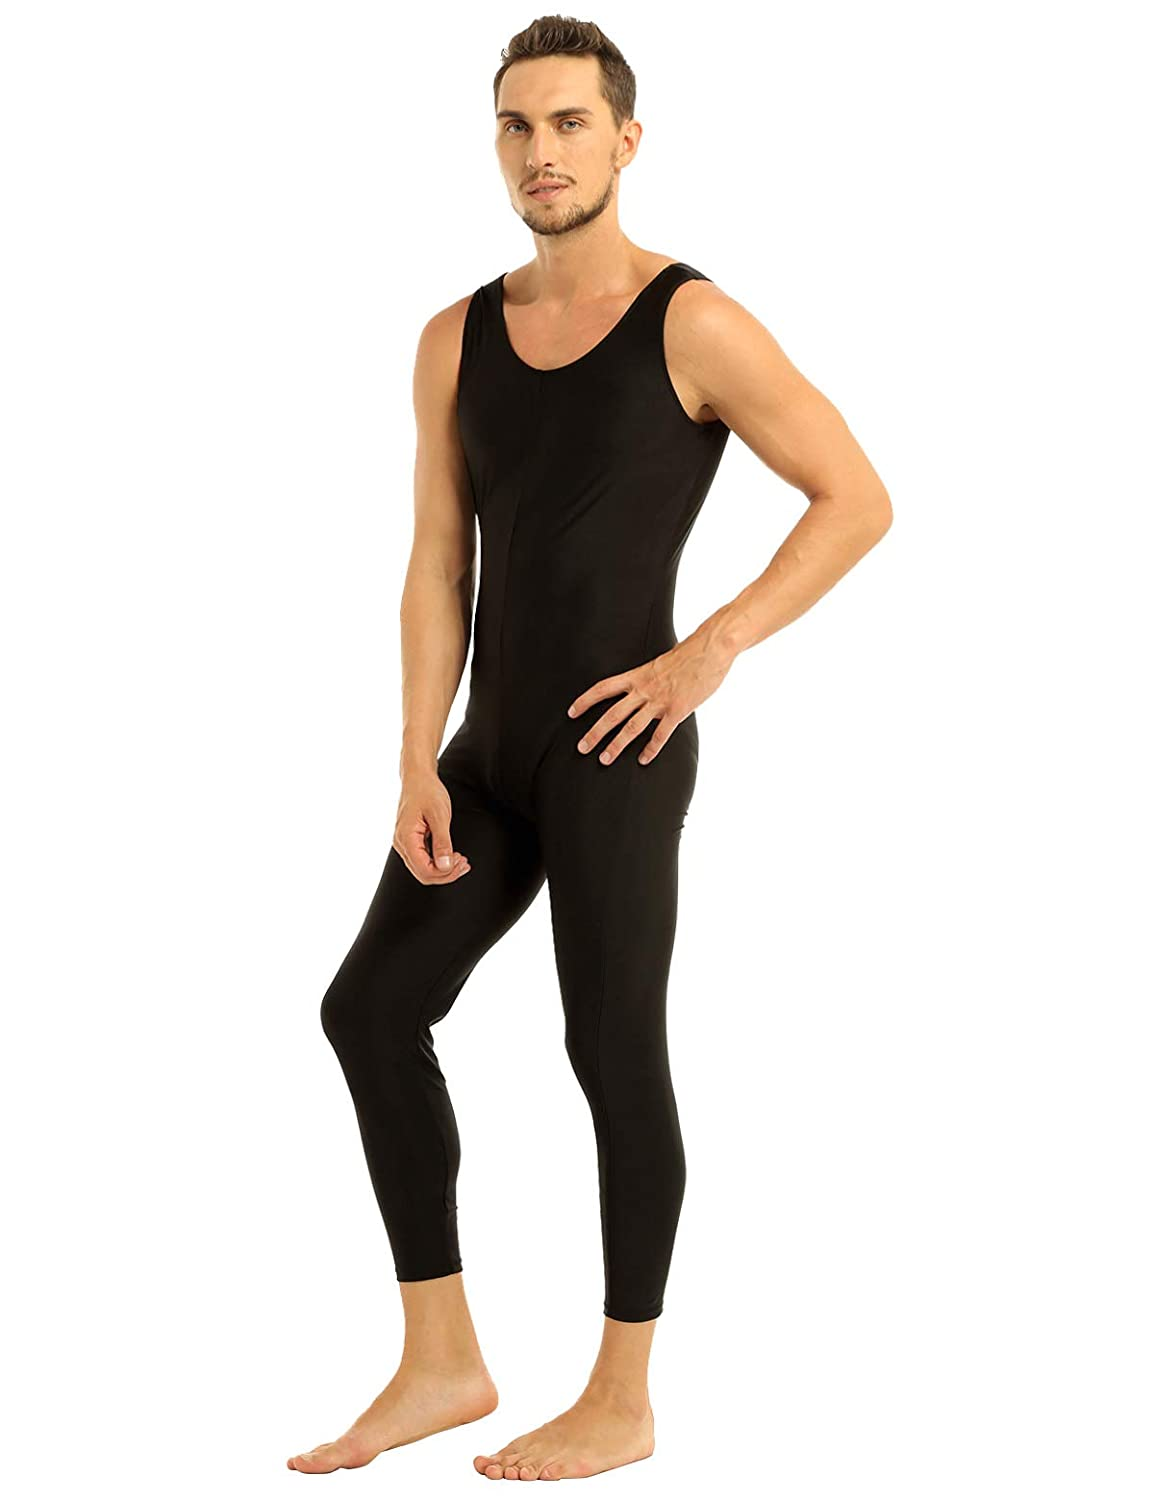 iiniim Mens Full Body One Piece Sleeveless Slim Fit Tank Unitard Leotard Bodysuit Dancewear